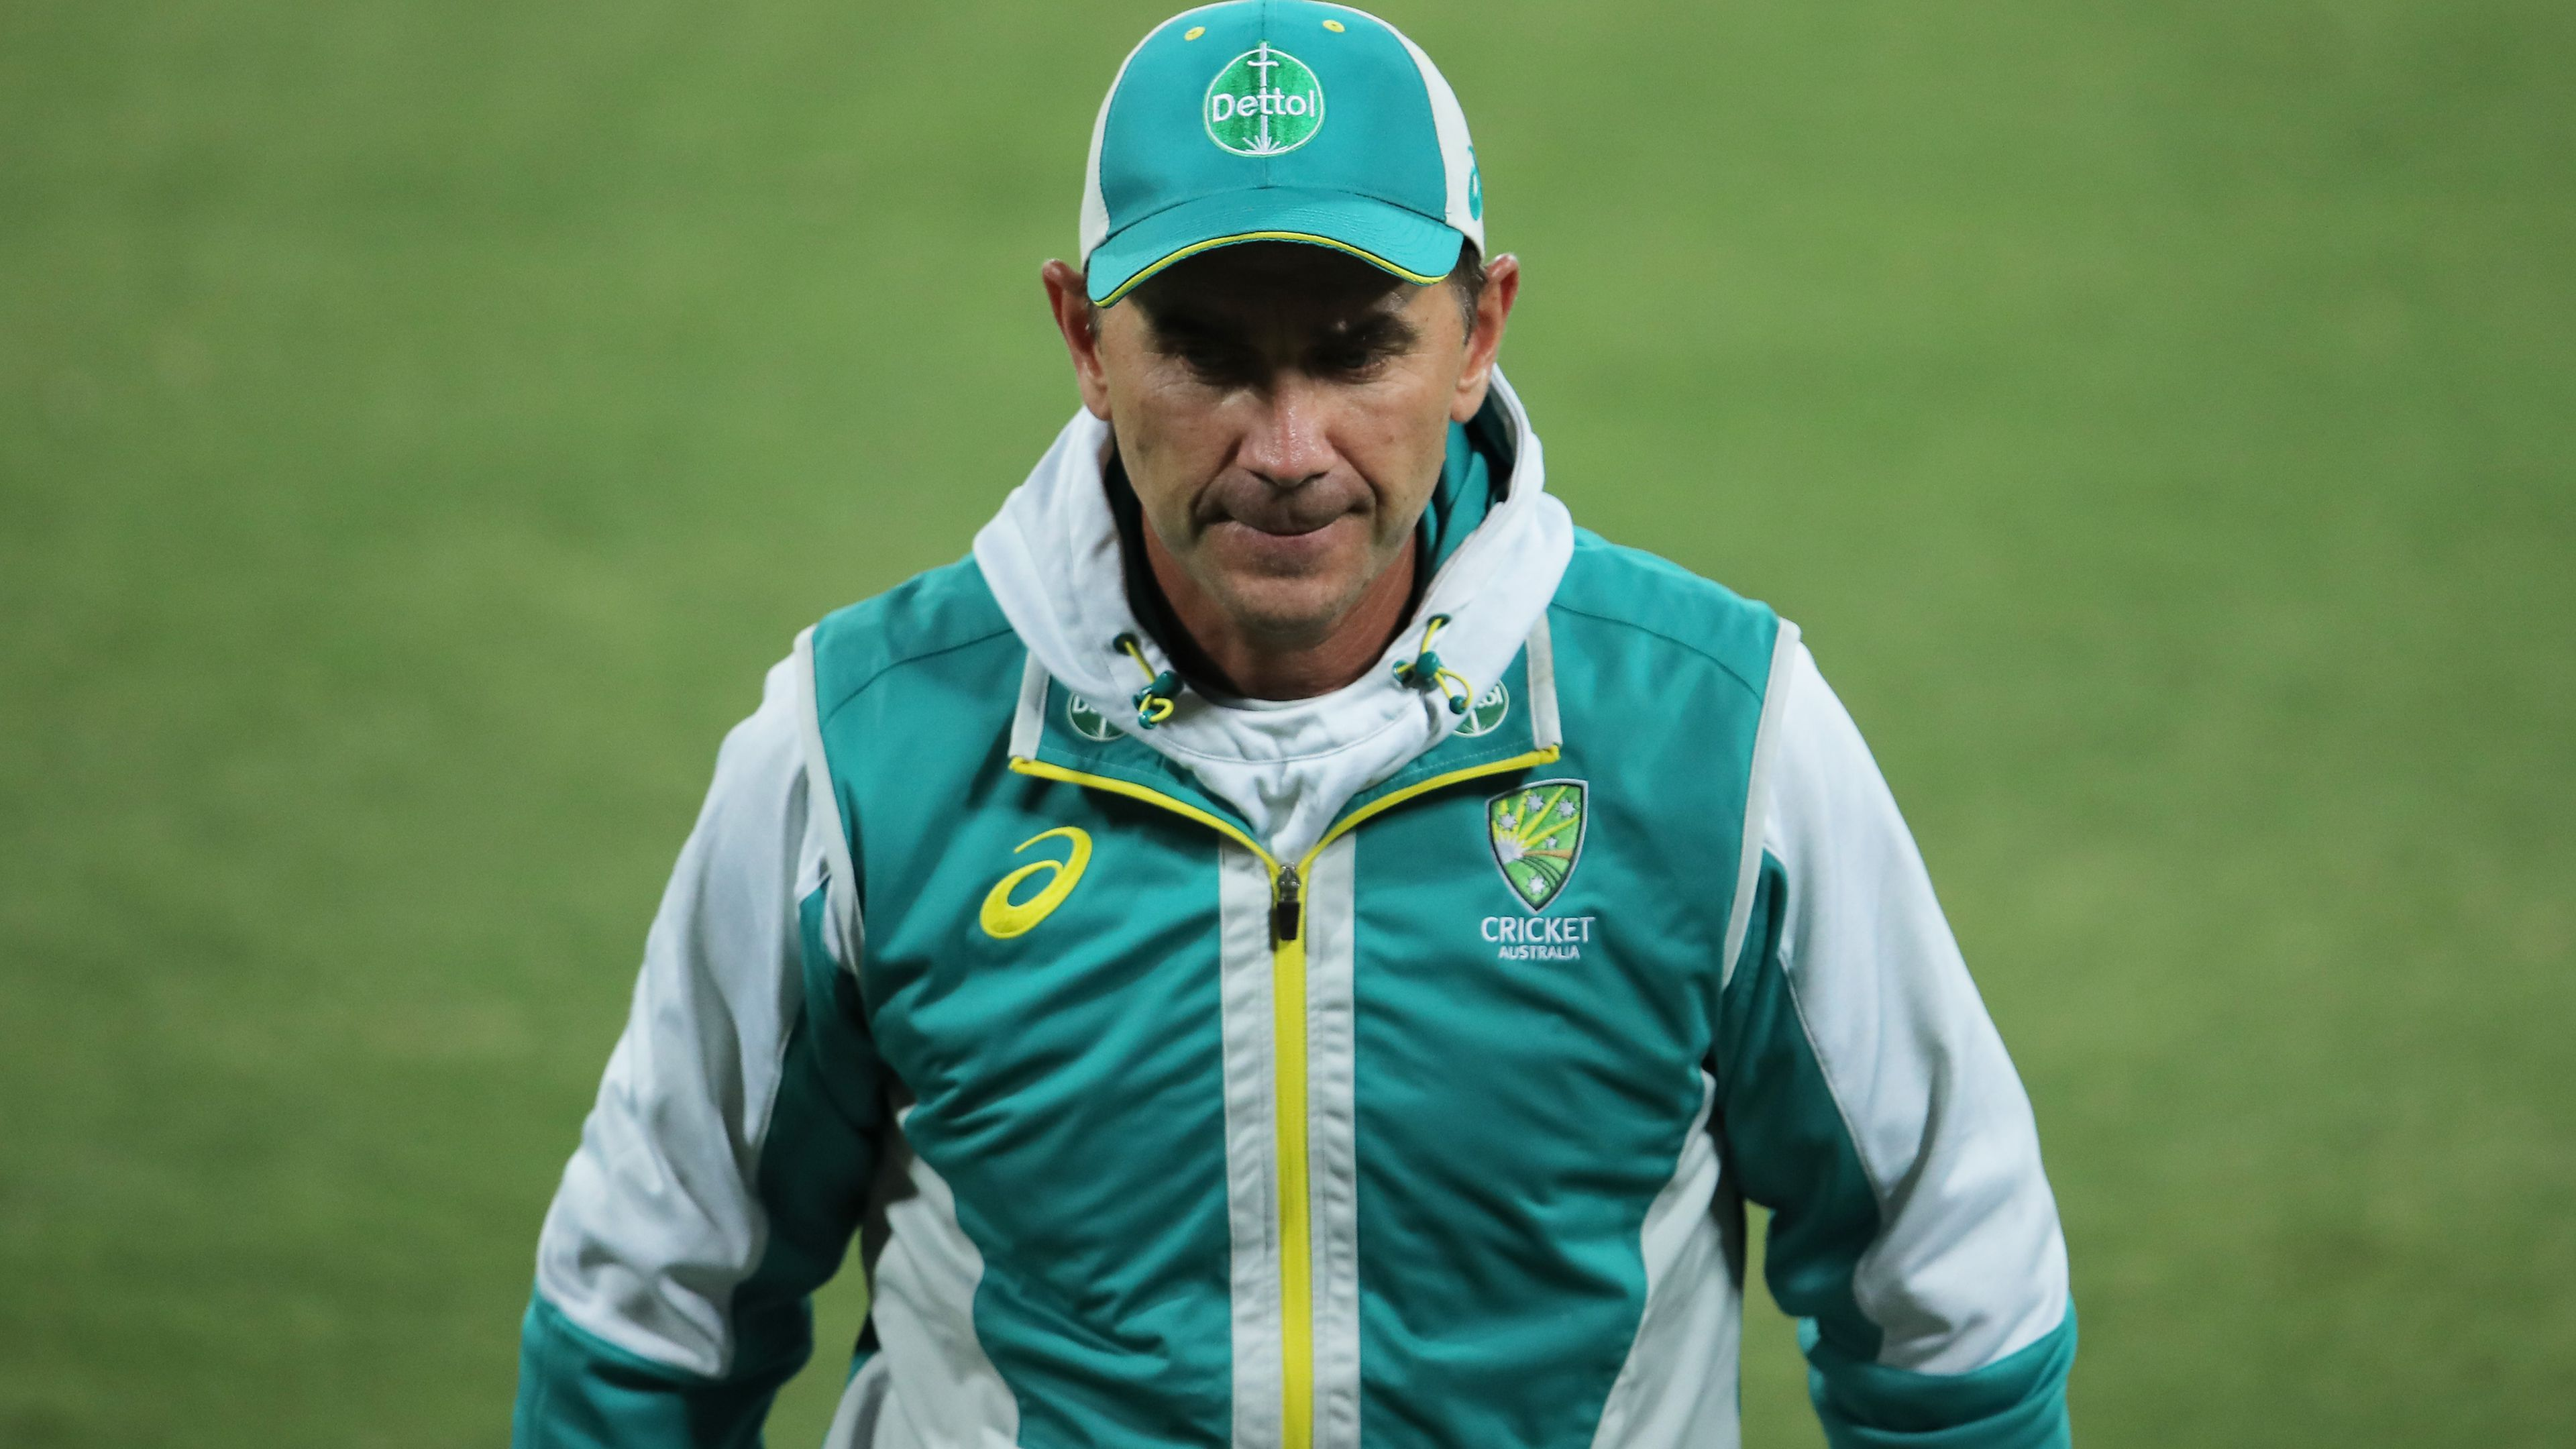 Justin Langer fires back at critics after T20 flop as injuries, COVID force Test series rethink